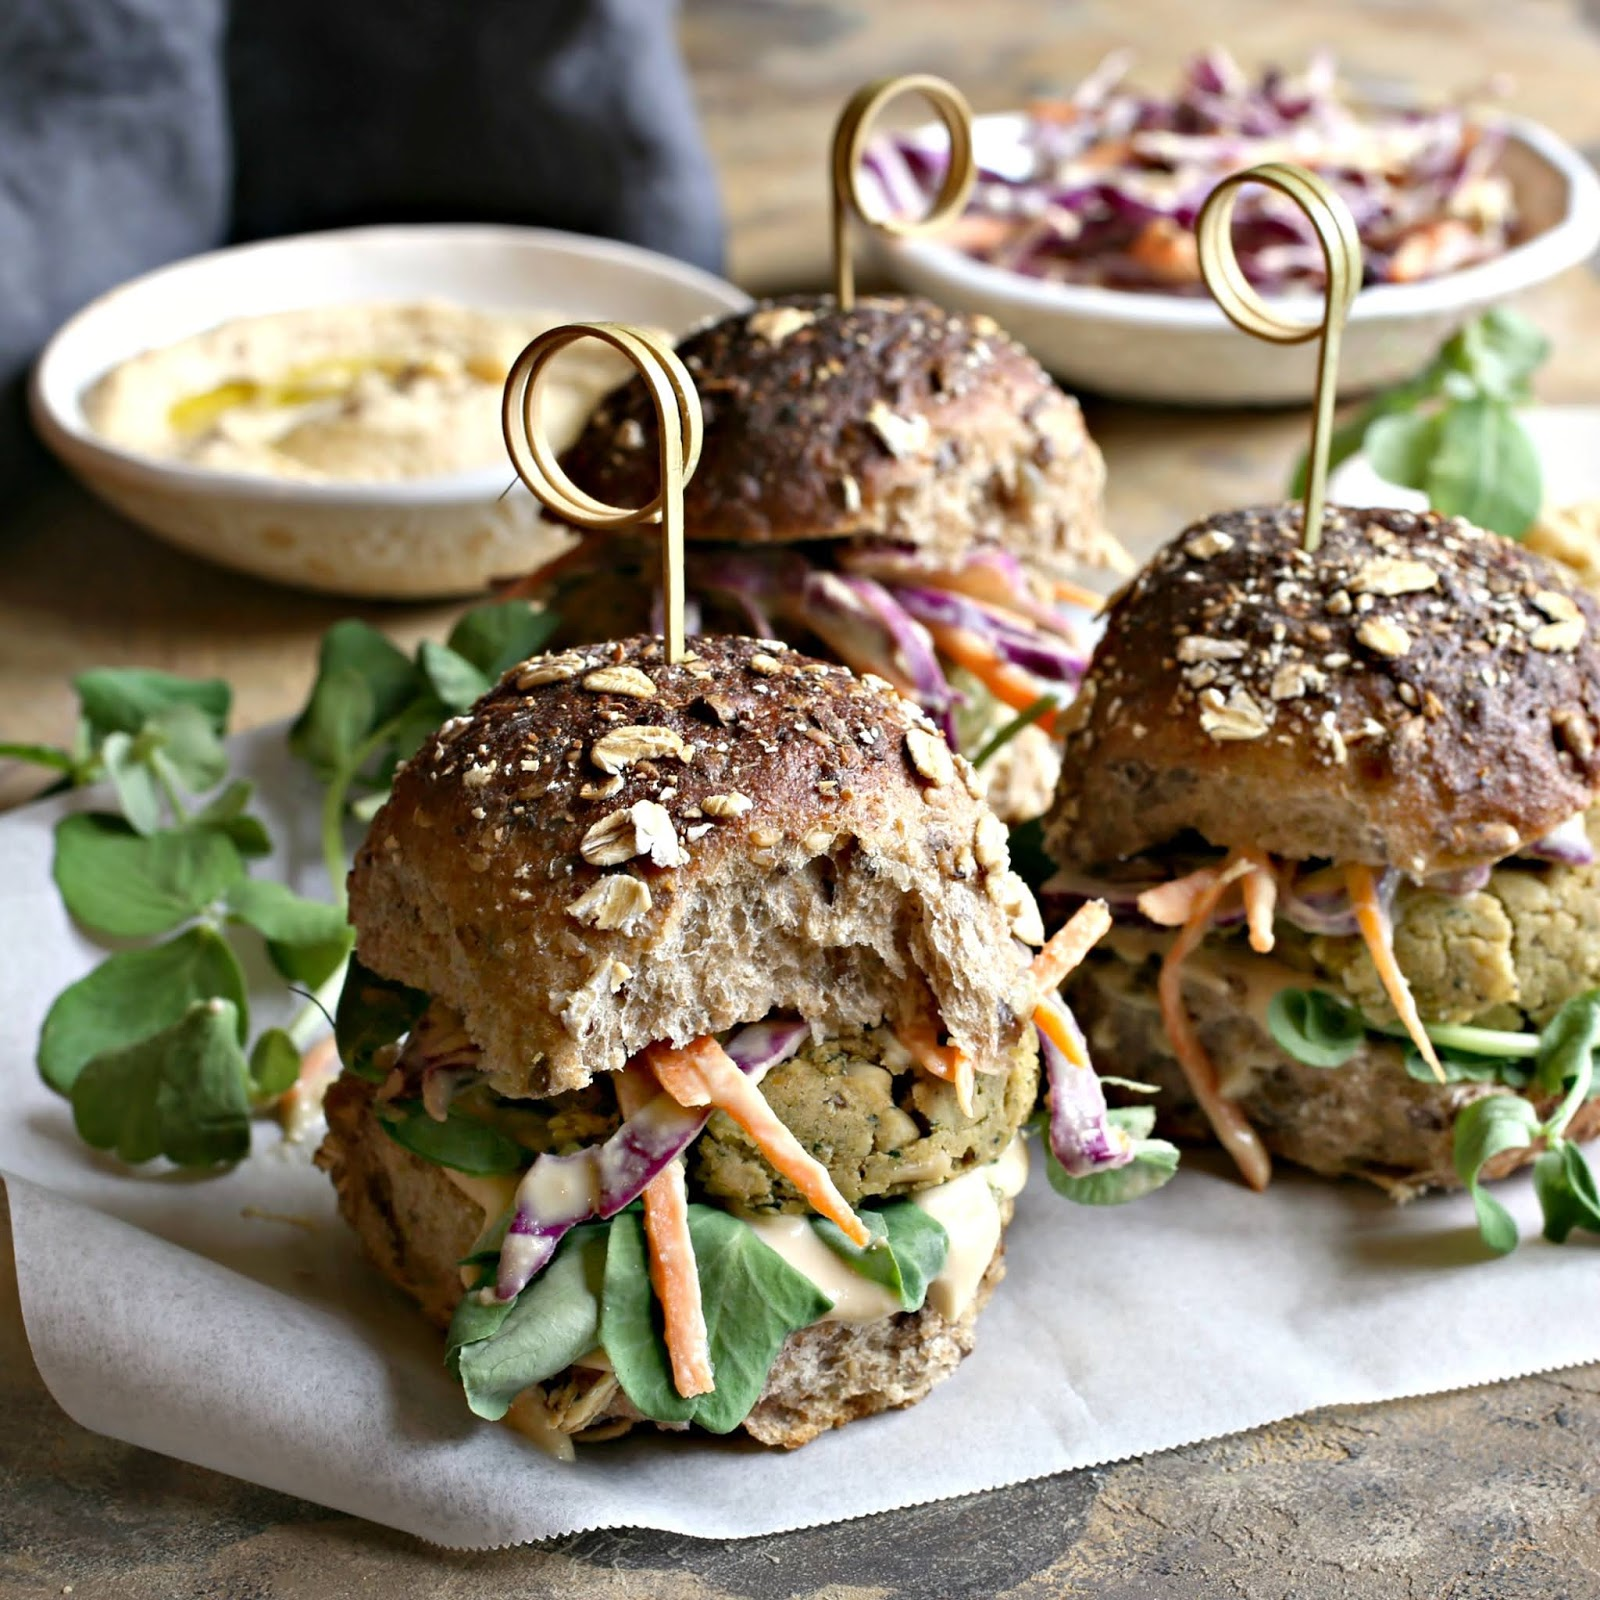 Recipe for baked chickpea and pine nut falafel patties topped with coleslaw in hummus dressing.